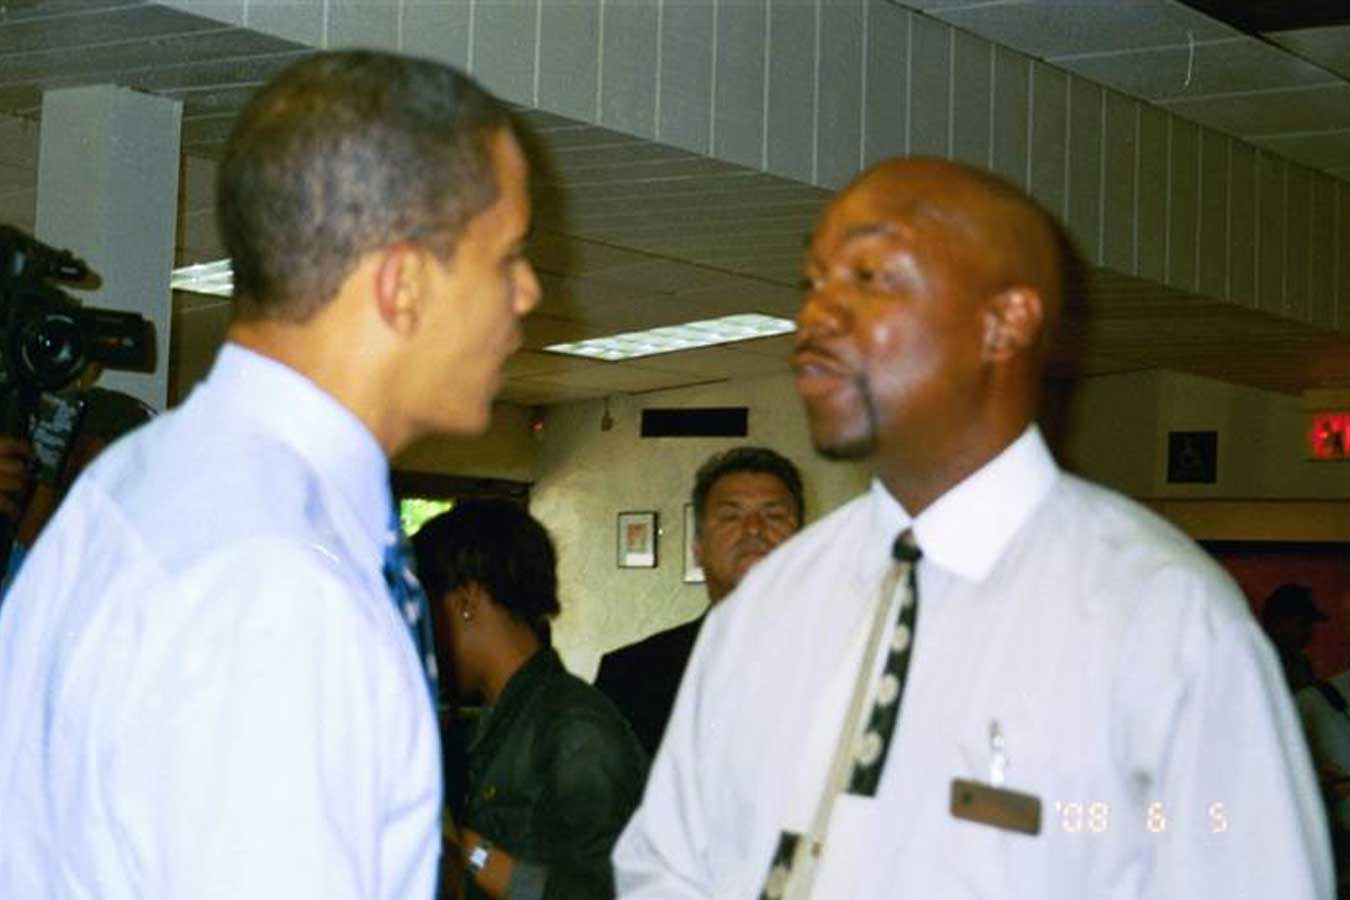 Barack Obama talking to a man